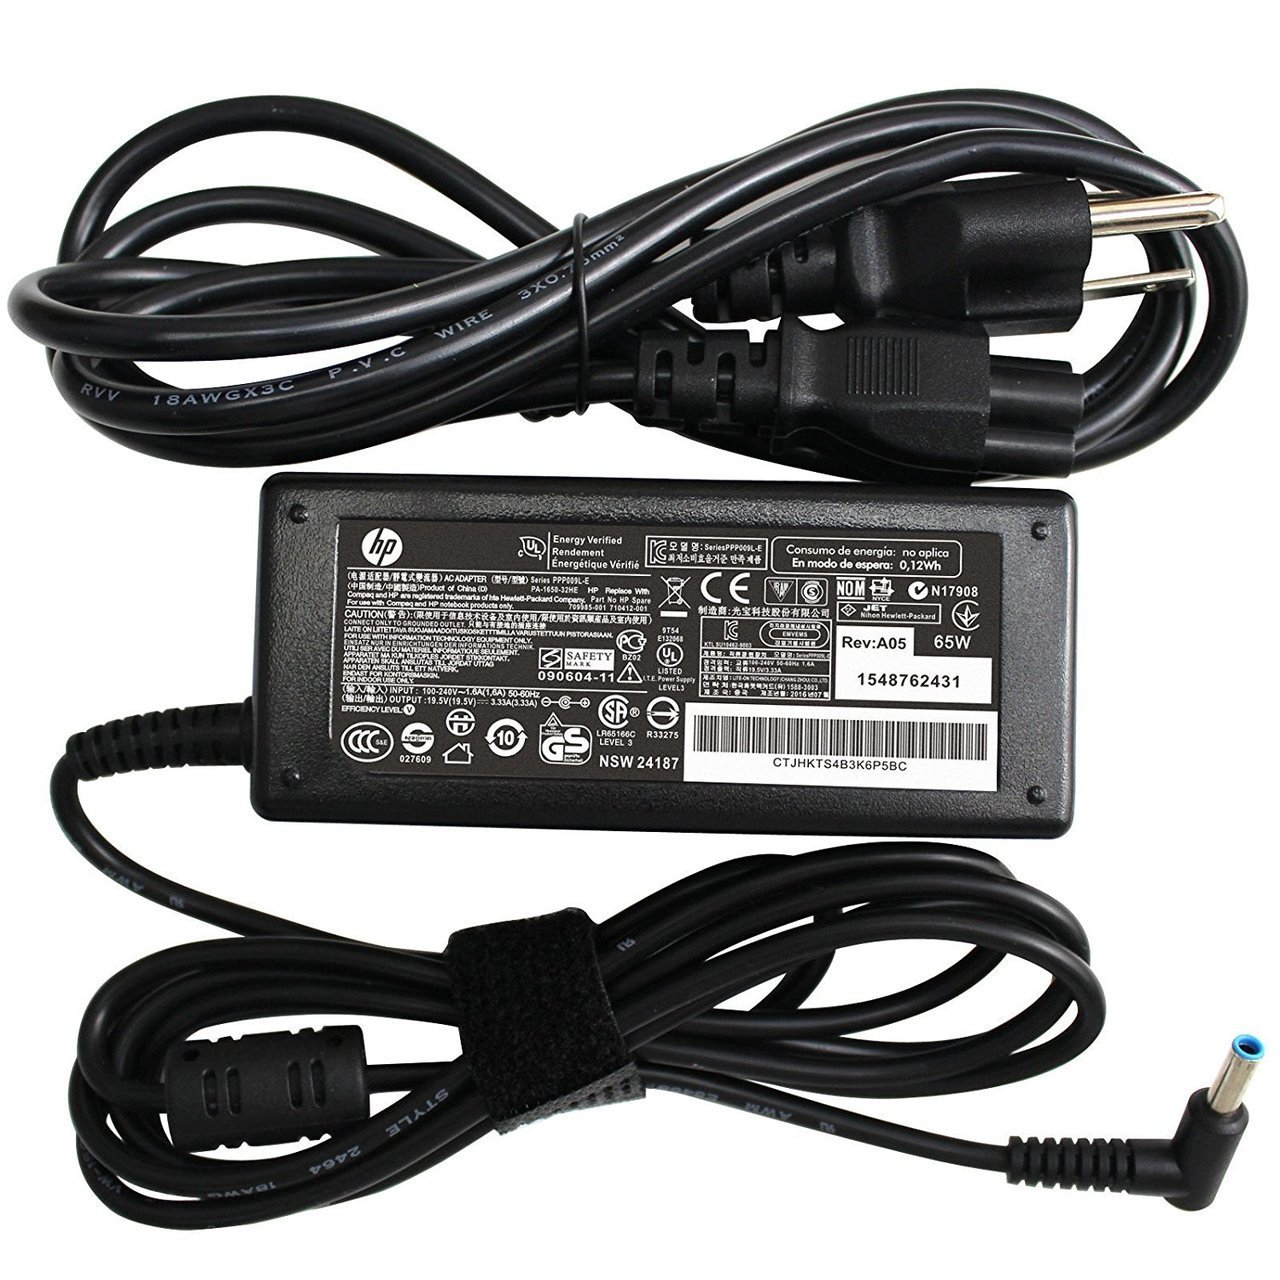 New Genuine HP Chromebook Envy Pavilion 45W 19.5V 2.31A AC Adapter With Cord 741553-850